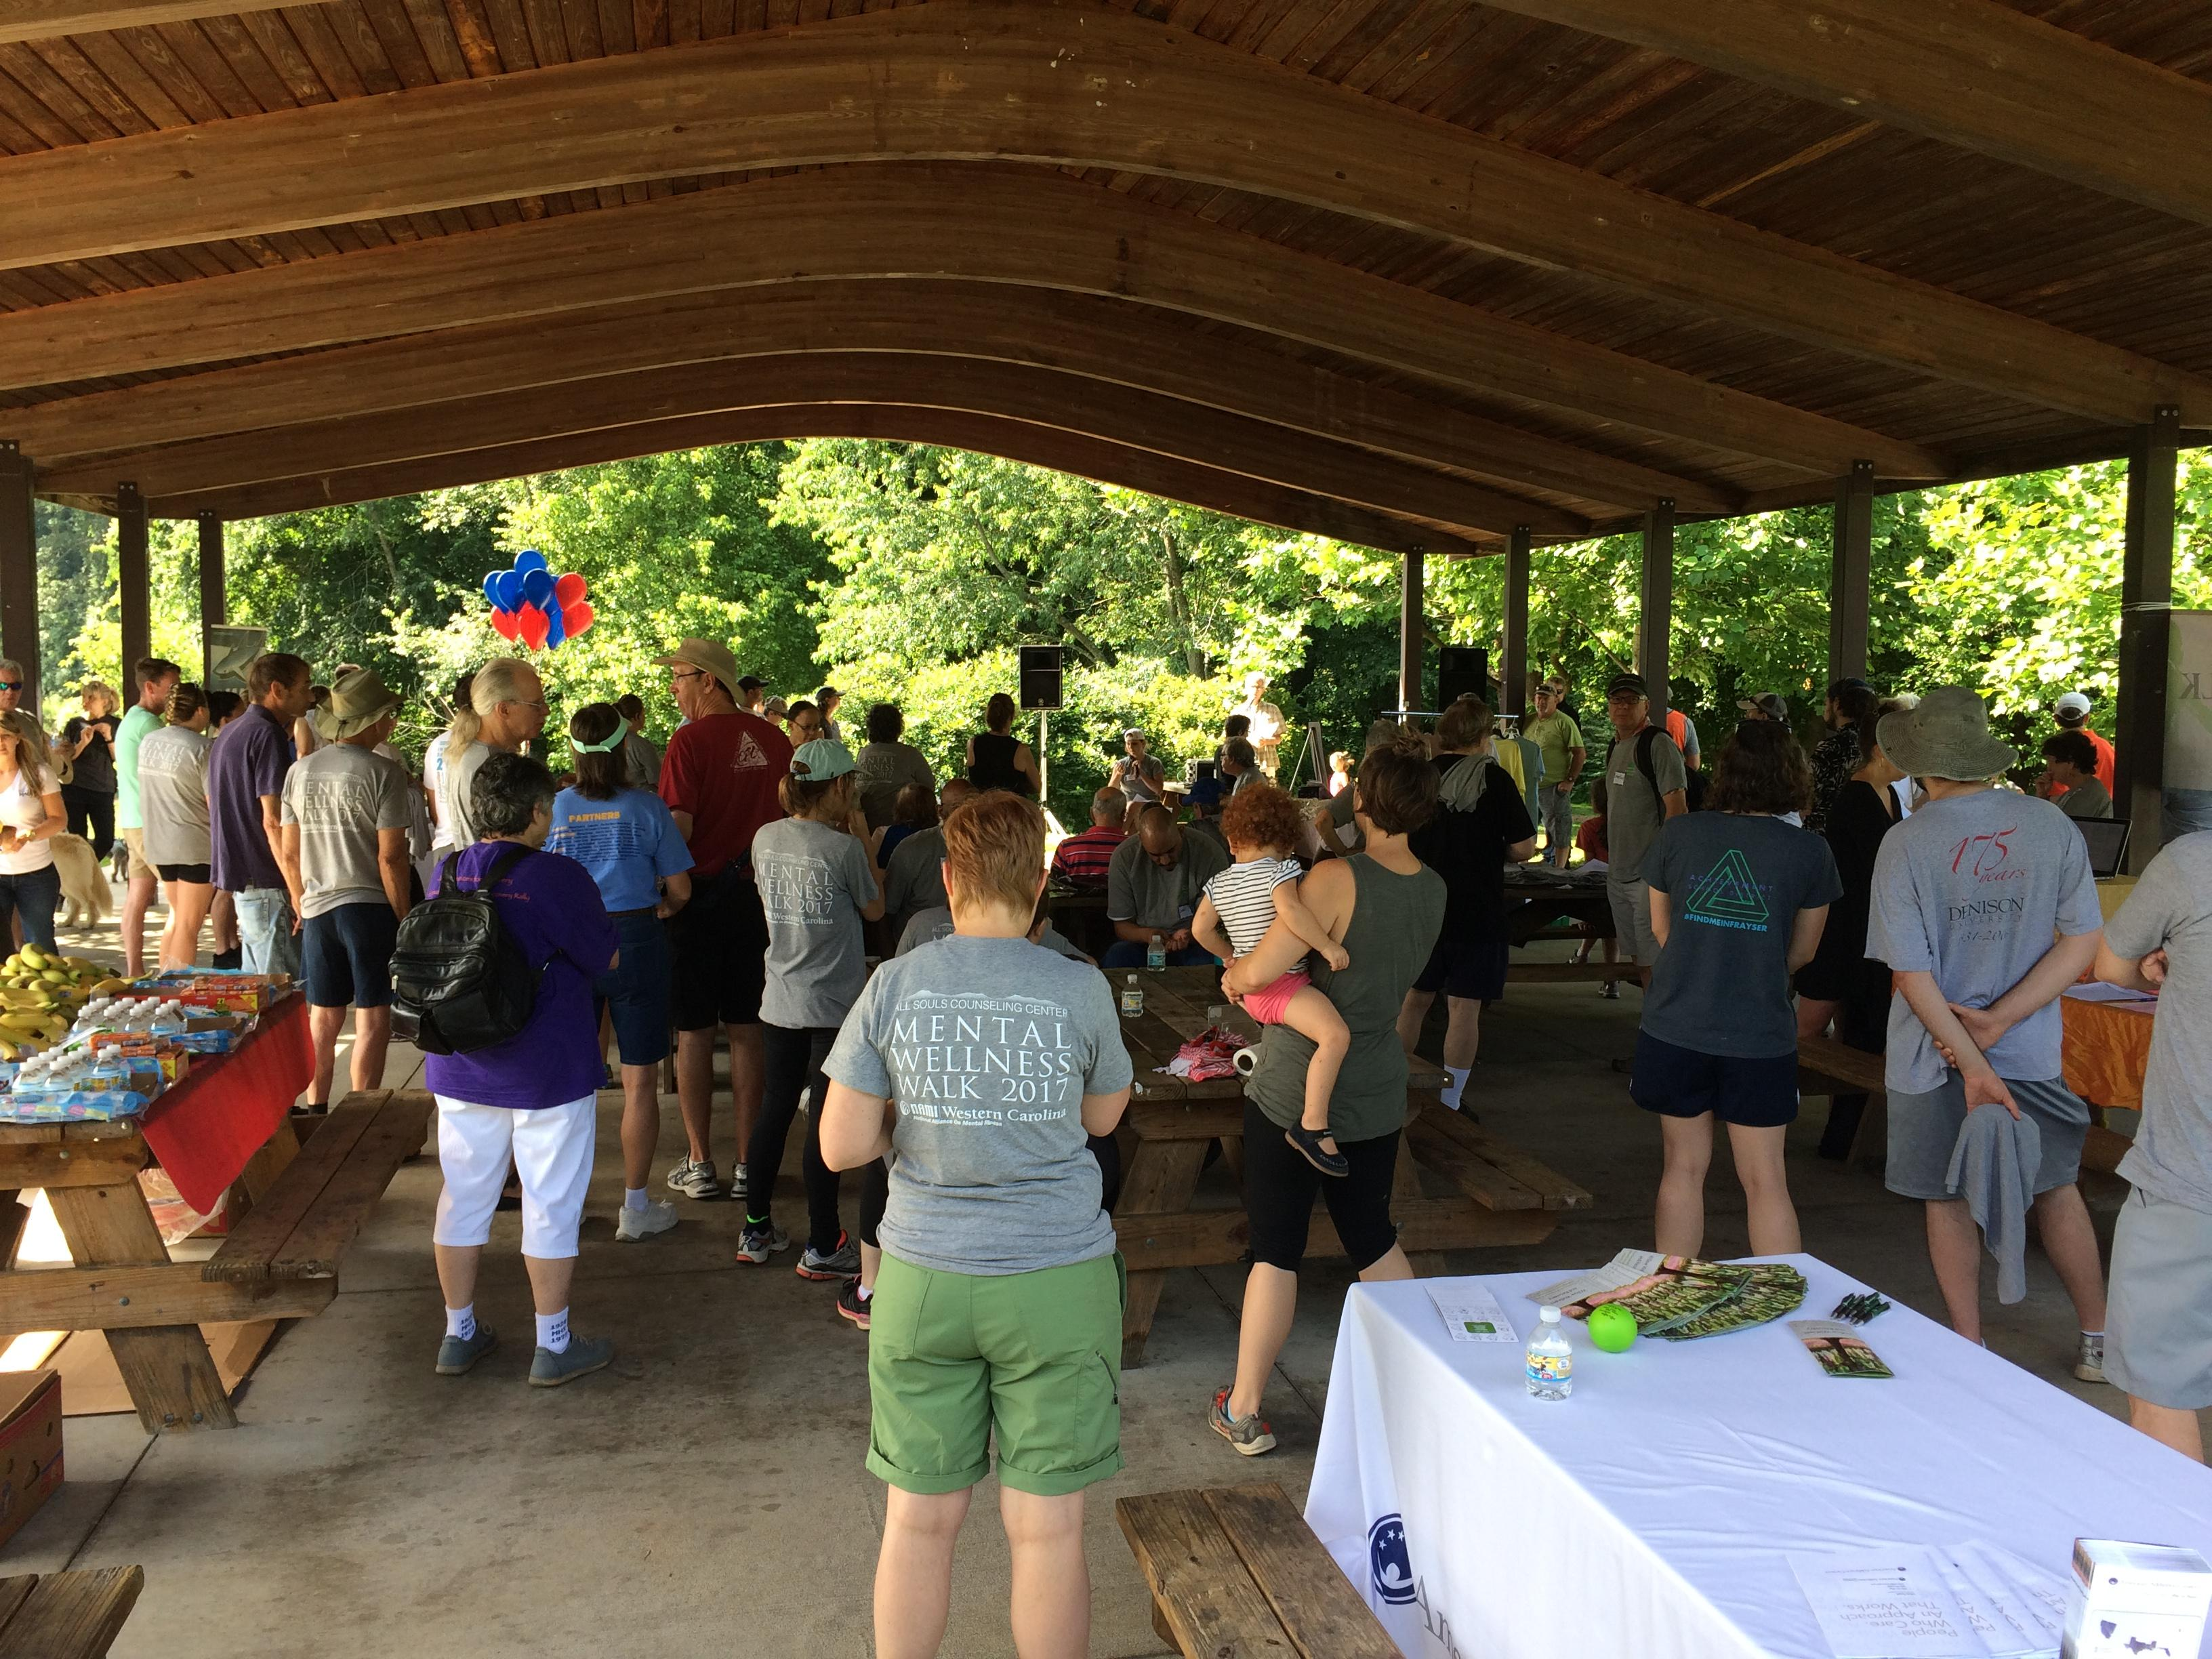 Over one hundred people gathered at Carrier Park Saturday morning to raise awareness for mental health. (Photo credit: WLOS Staff)